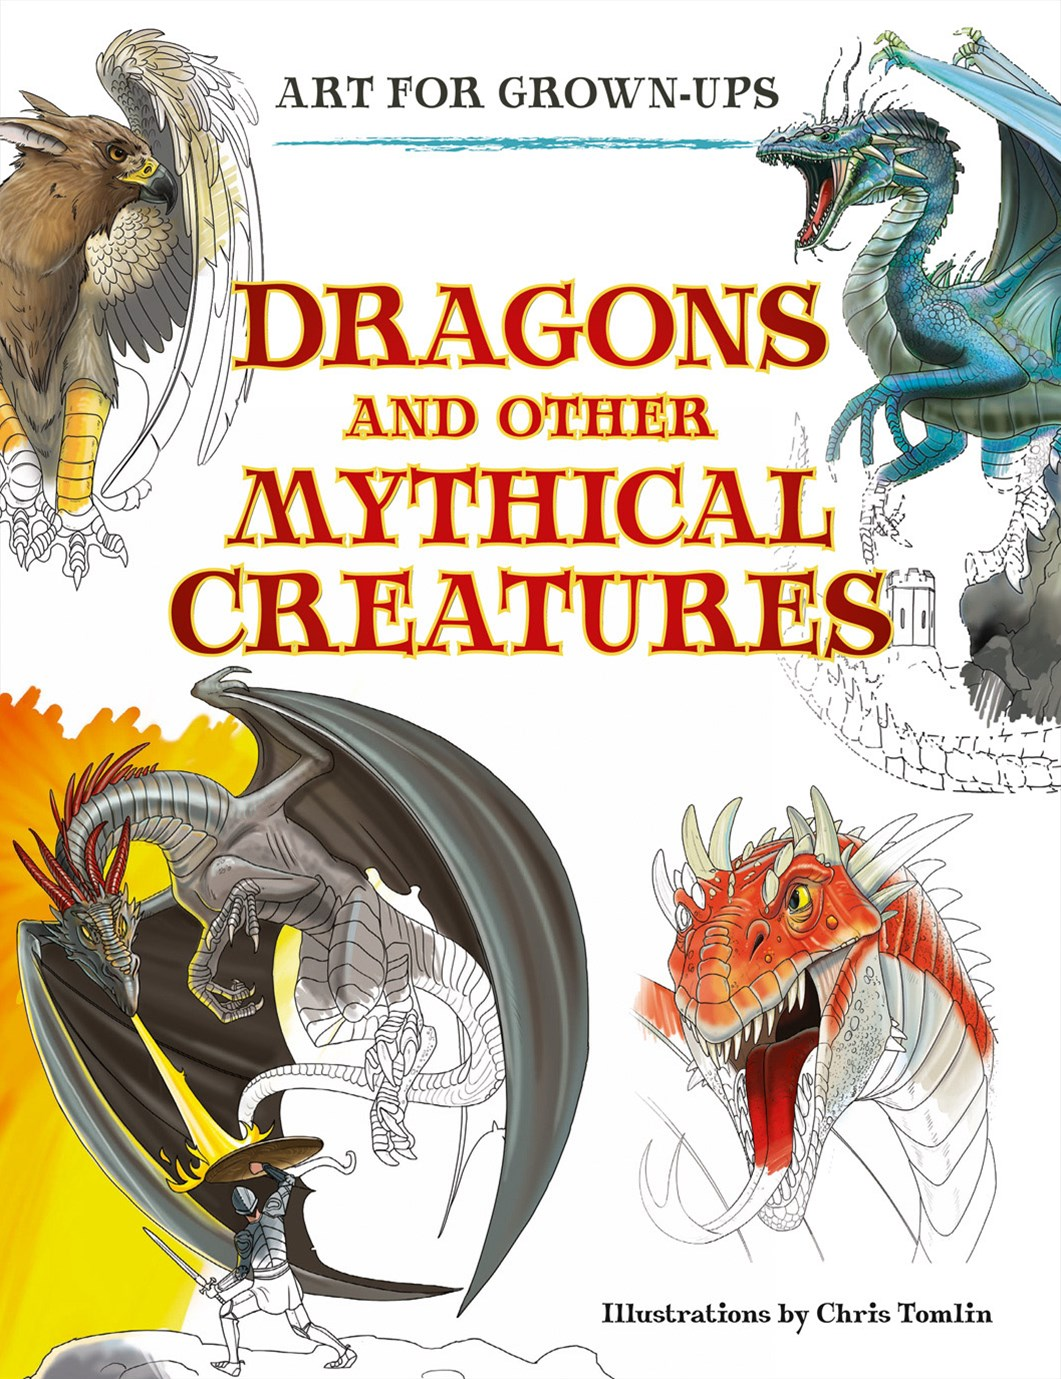 Art For Grown-ups - Dragons And Other Mythical Creatures